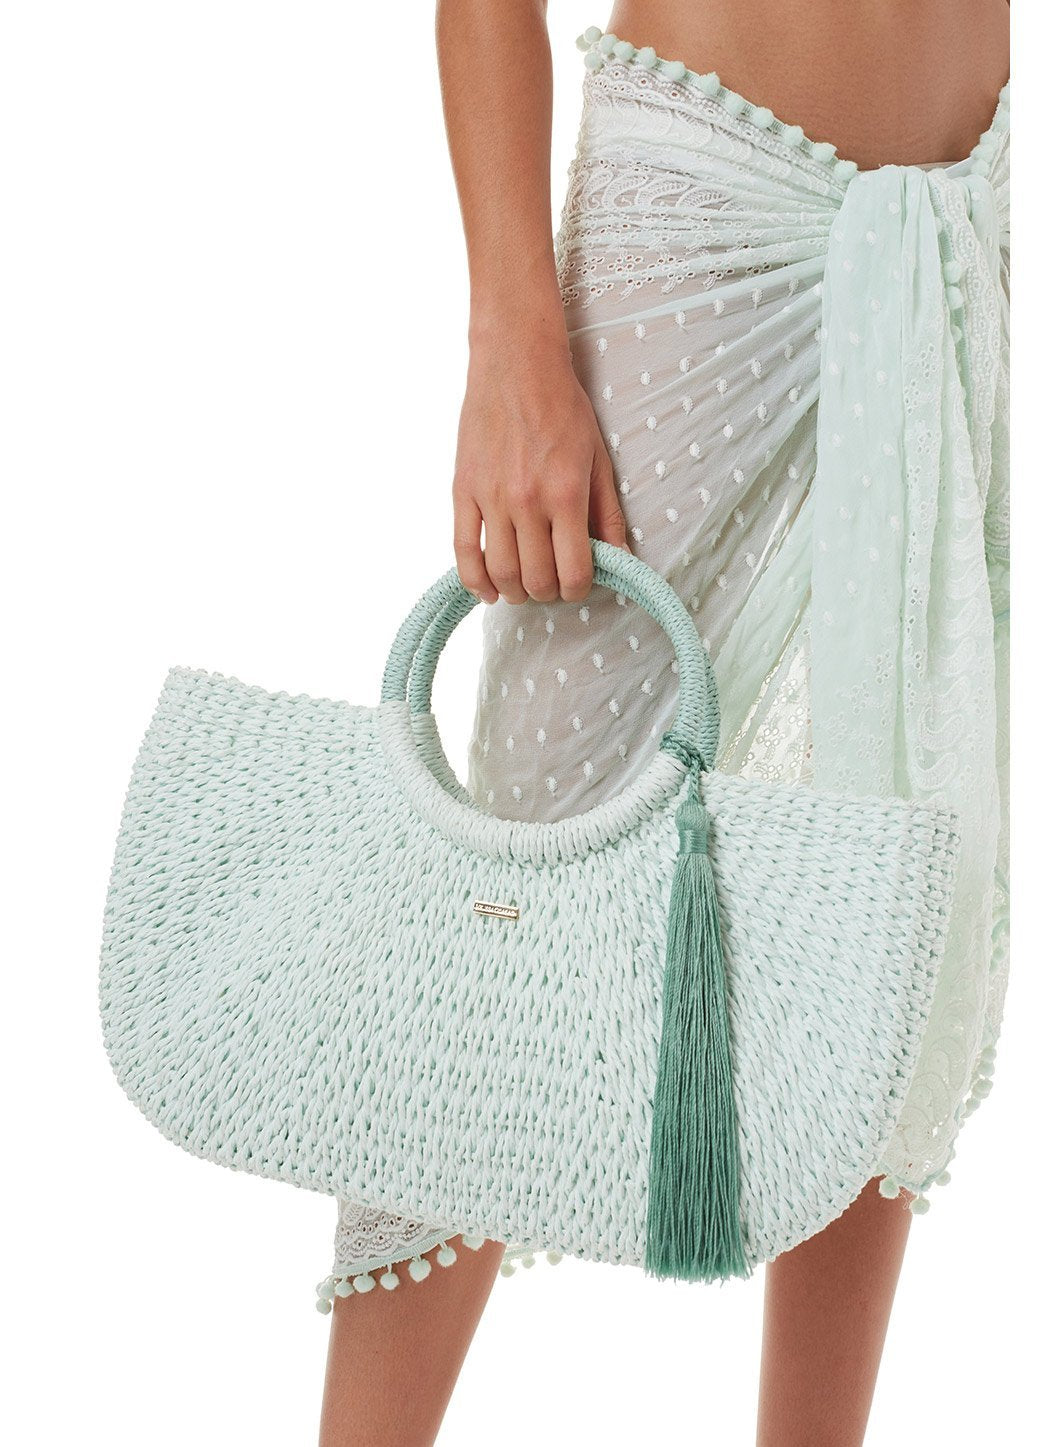 sorrento woven basket tassle bag mint 2019 3